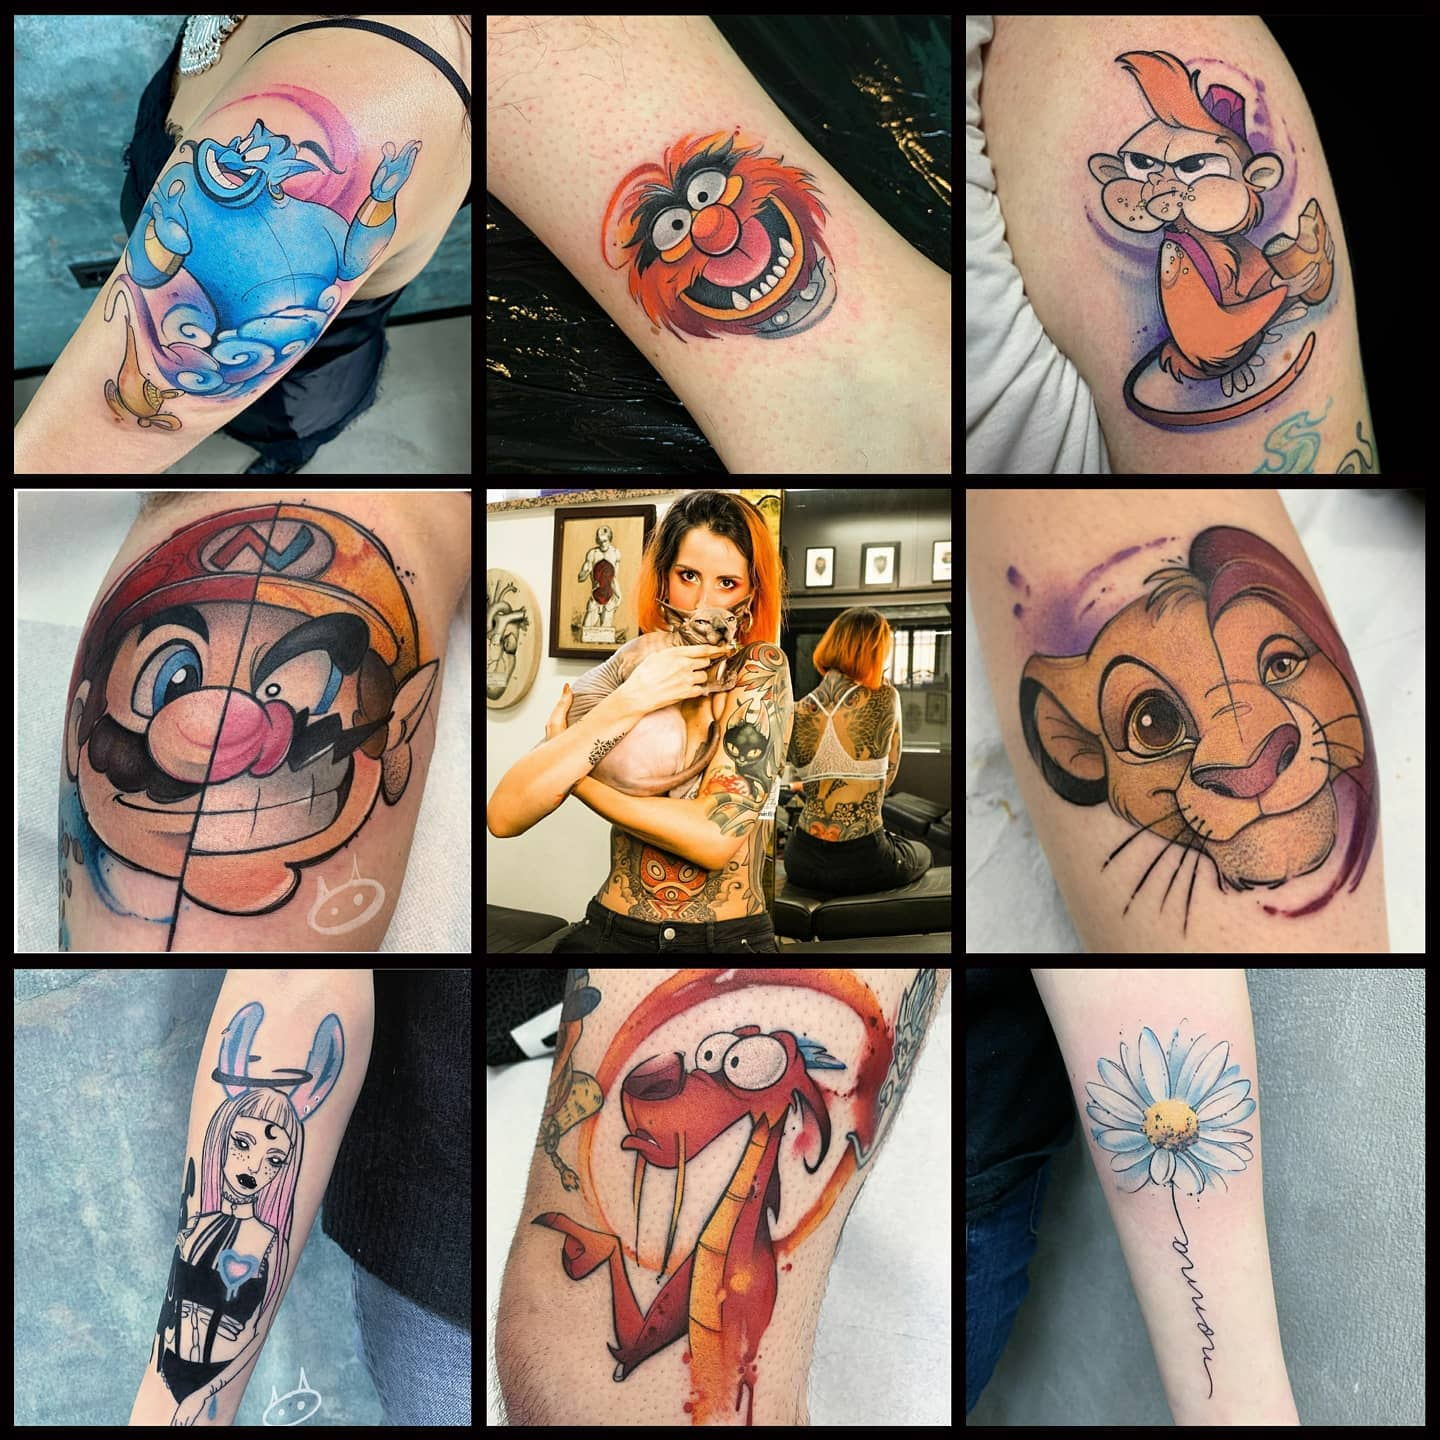 Stefania Bianchi will be joining us for her first guest spot at Watermelon from the 11th to the 16th November! Can't wait! Bookings and enquiries as usual through the enquiry form on our website please!!!